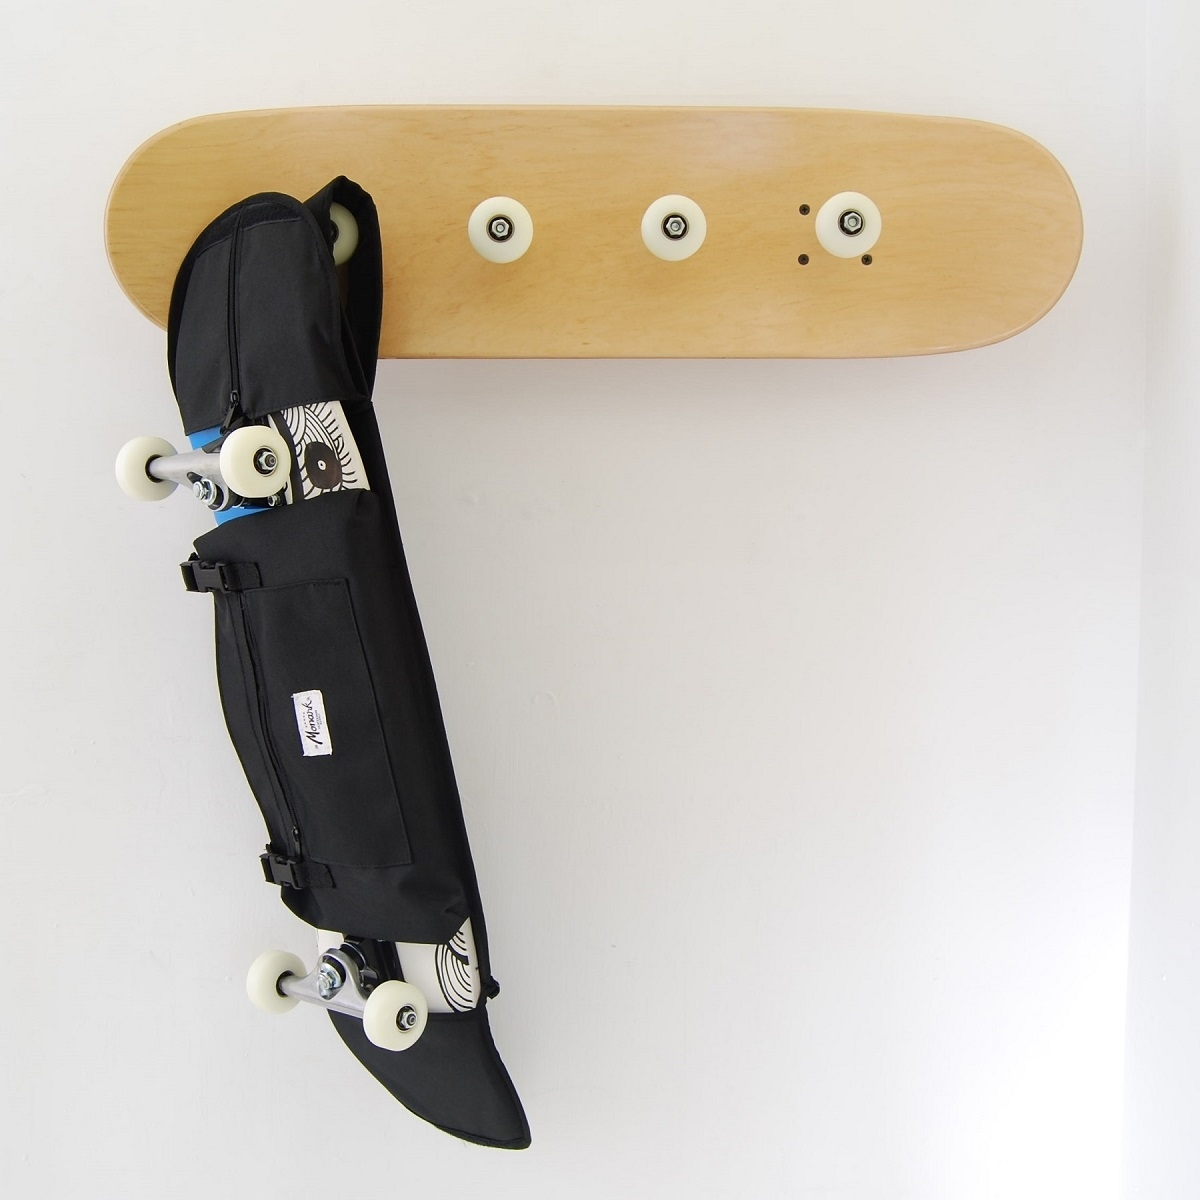 Skateboard Skateboard Excellent Skate Coat Rack And Skateboard Bag For Carrying